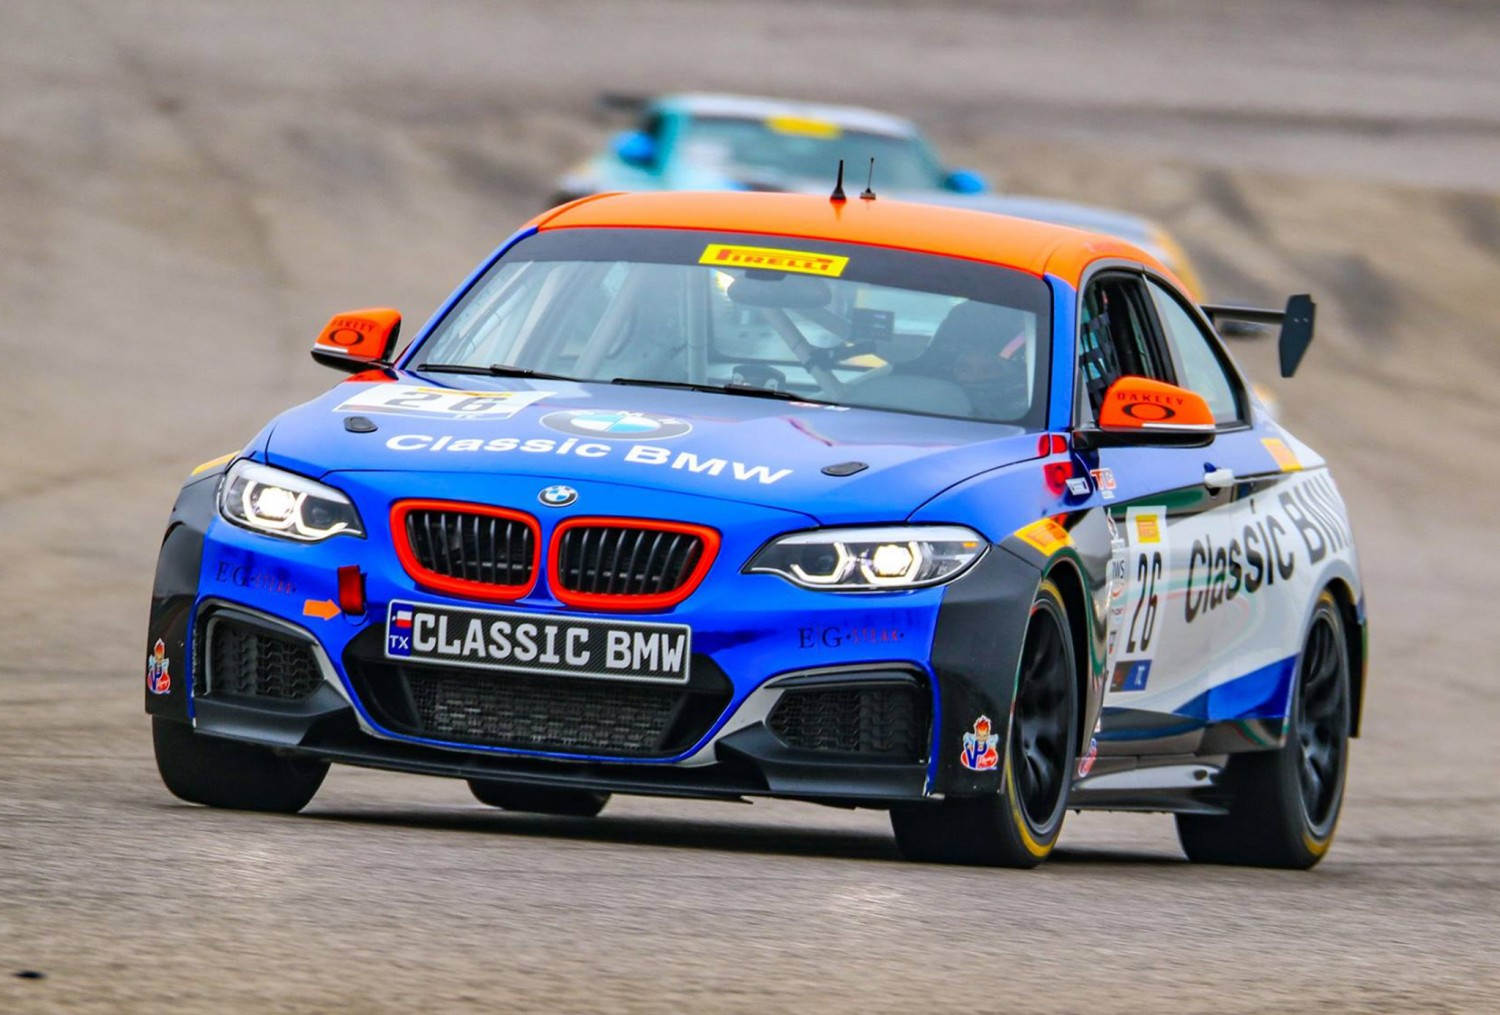 Fast Track Racing/CLASSIC BMW Team Set for SRO Doubleheader This weekend at the famed Watkins Glen Int'l